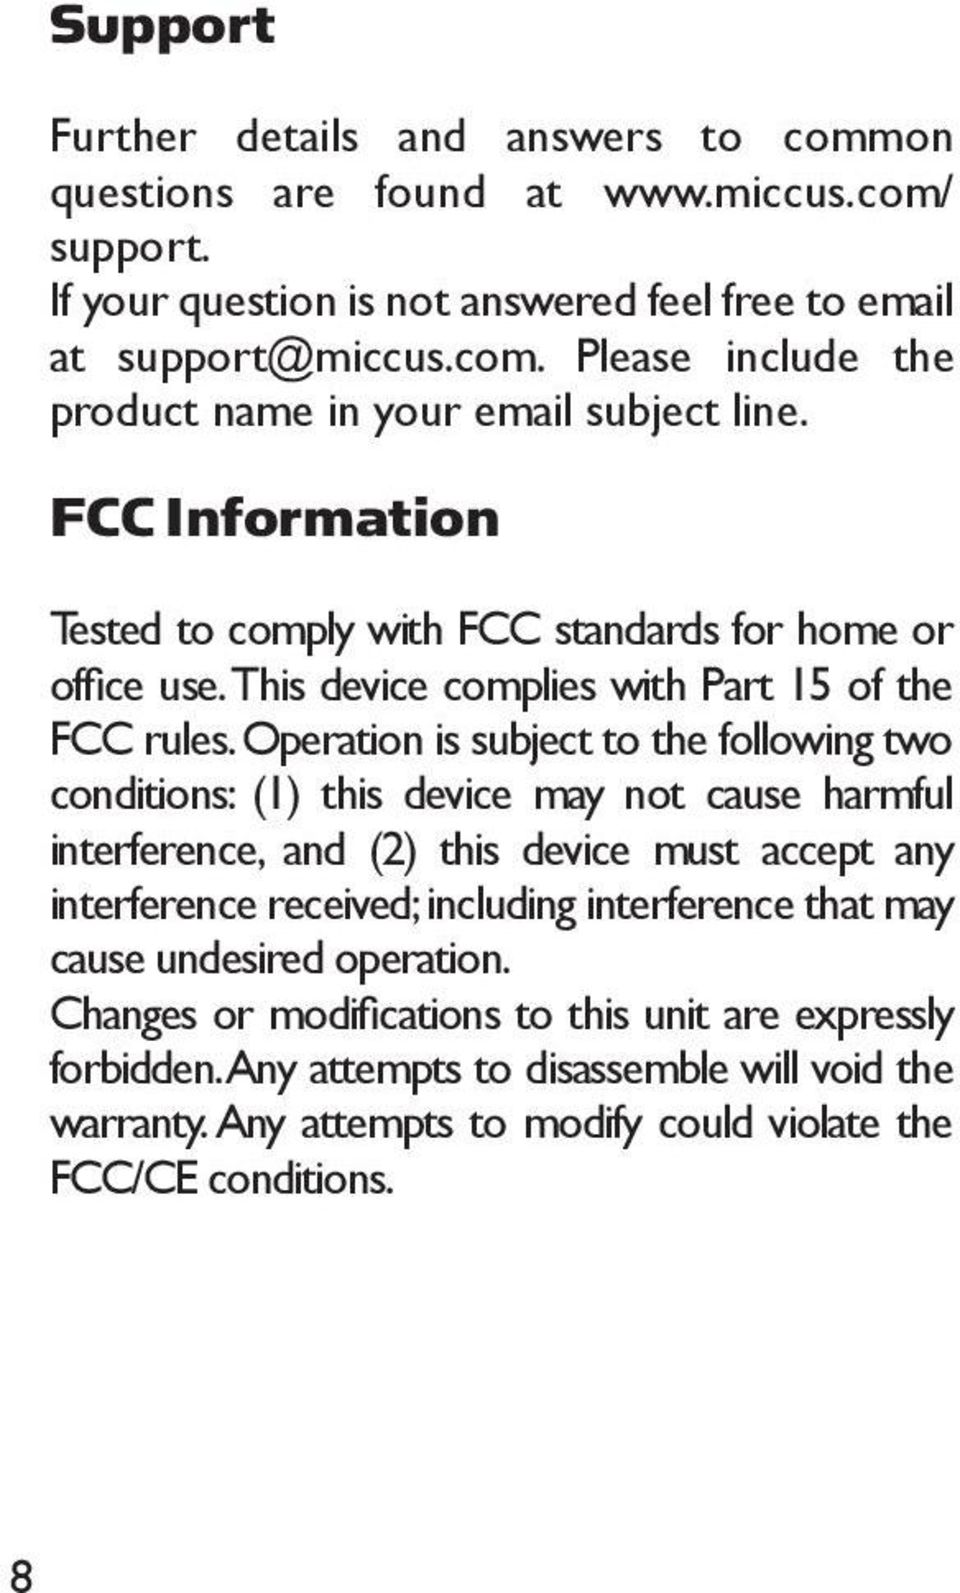 Operation is subject to the following two conditions: (1) this device may not cause harmful interference, and (2) this device must accept any interference received; including interference